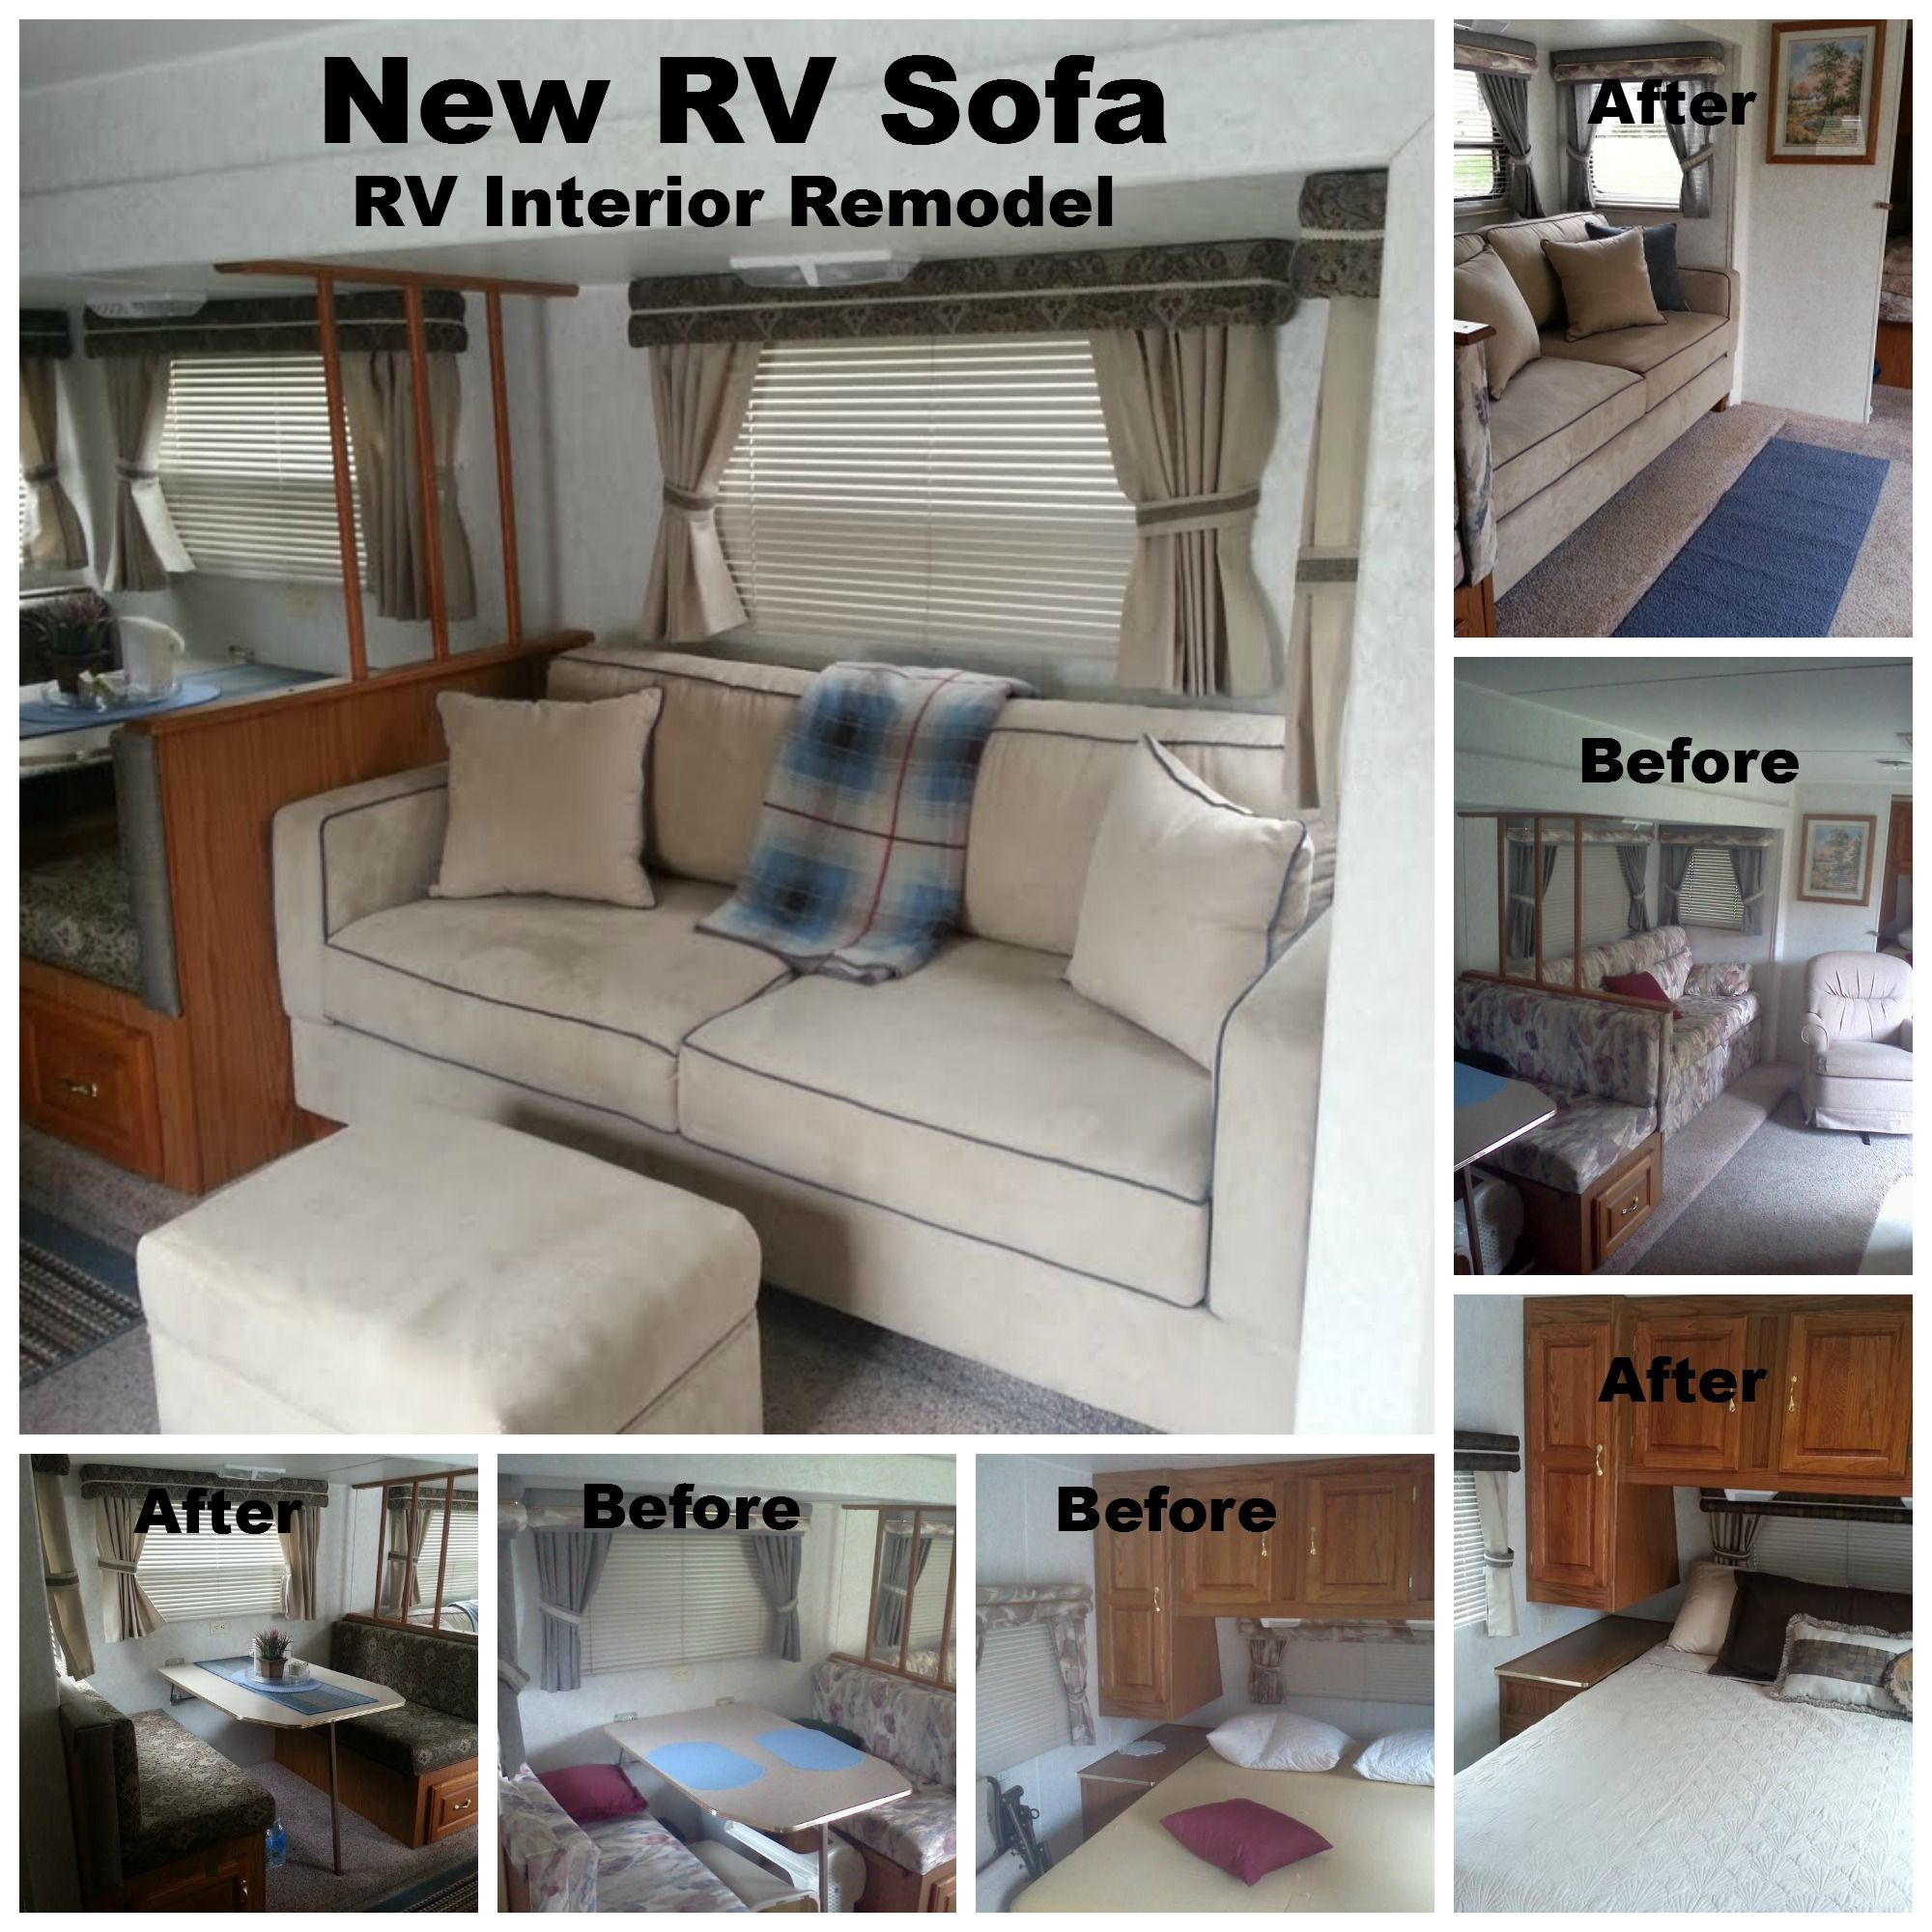 My RV 1999 Jayco Remodel With New Sofa 72 X 34 Fit Through Door Made For Small Tight Spaces